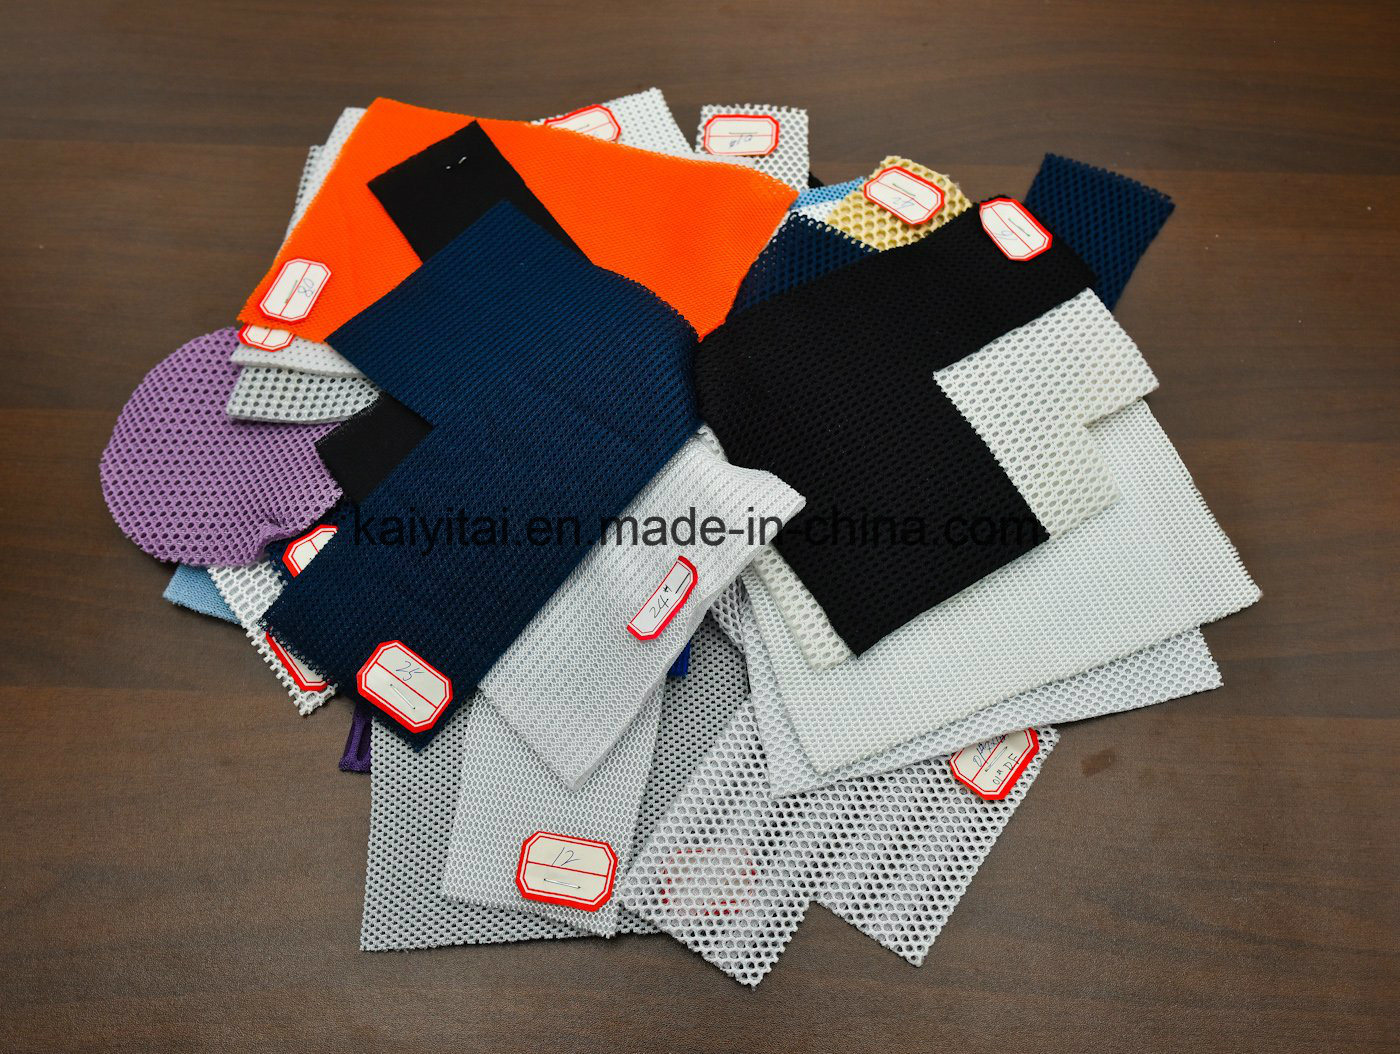 Many Different Kind of Air Mesh Fabric